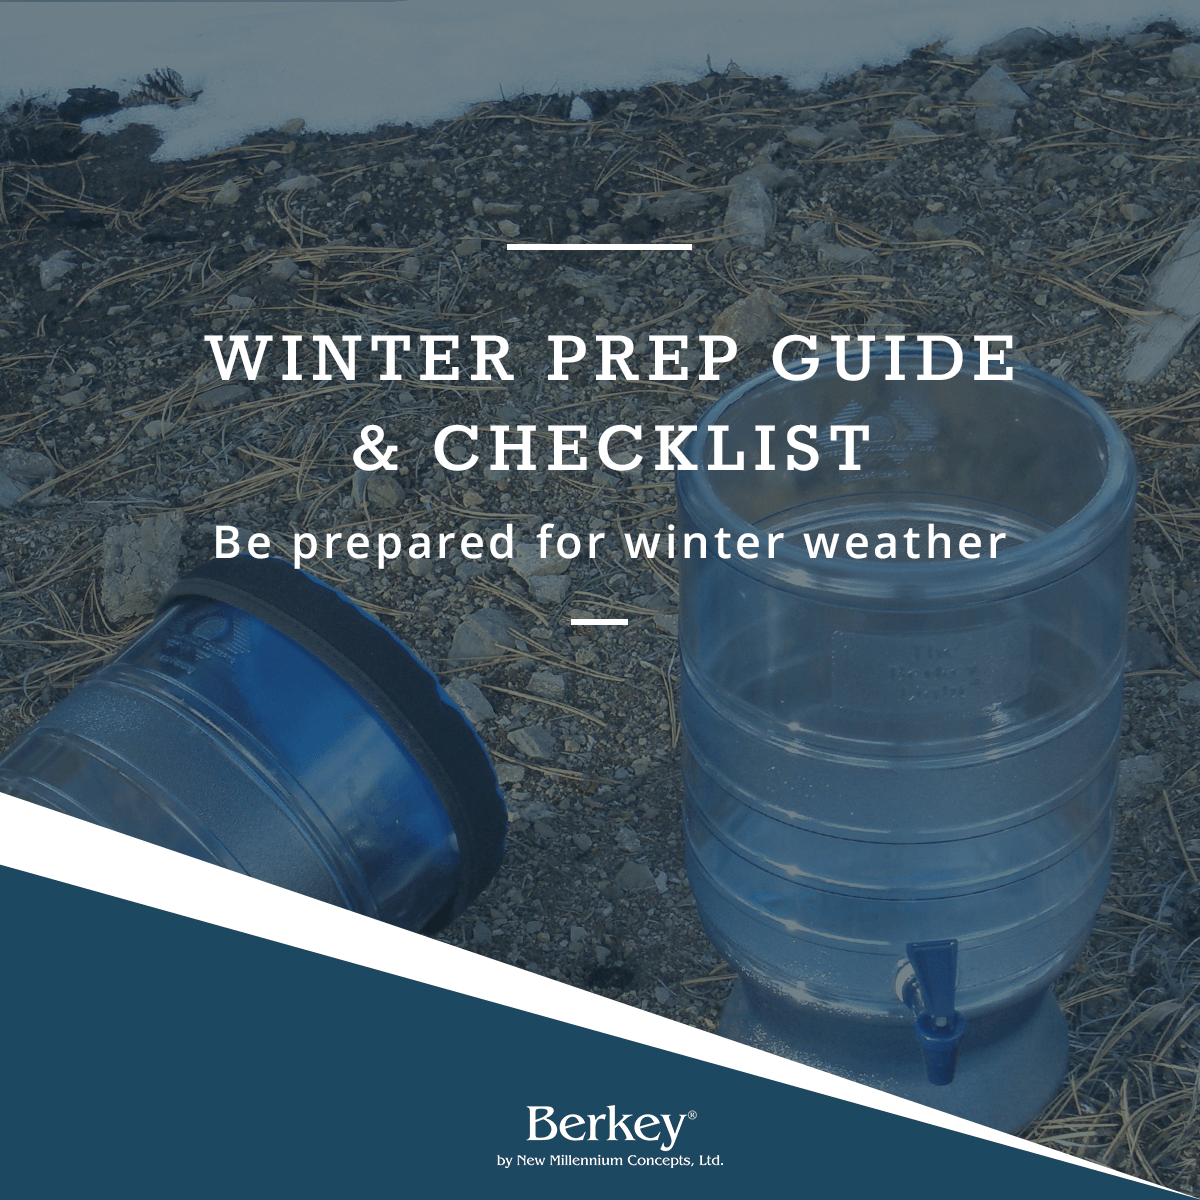 Winter Prep Guide and Checklist: Be prepared for winter weather